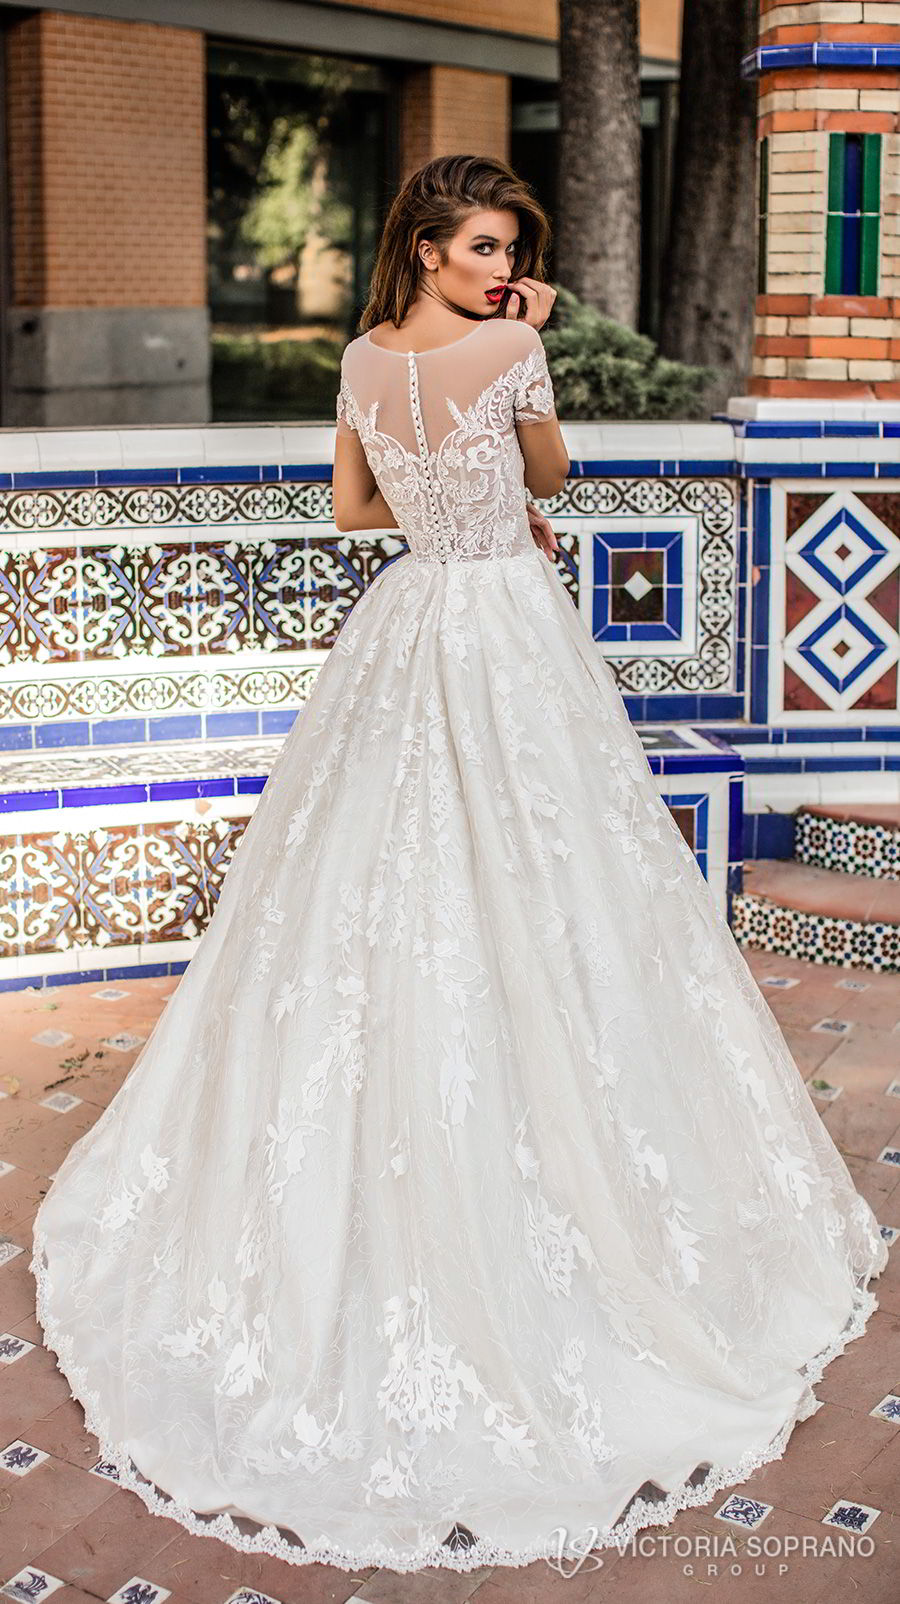 victoria soprano 2018 bridal short sleeves illusion jewel sweetheart neckline heavily embellished bodice romantic a line wedding dress with pockets sheer lace back chapel train (vivian) bv